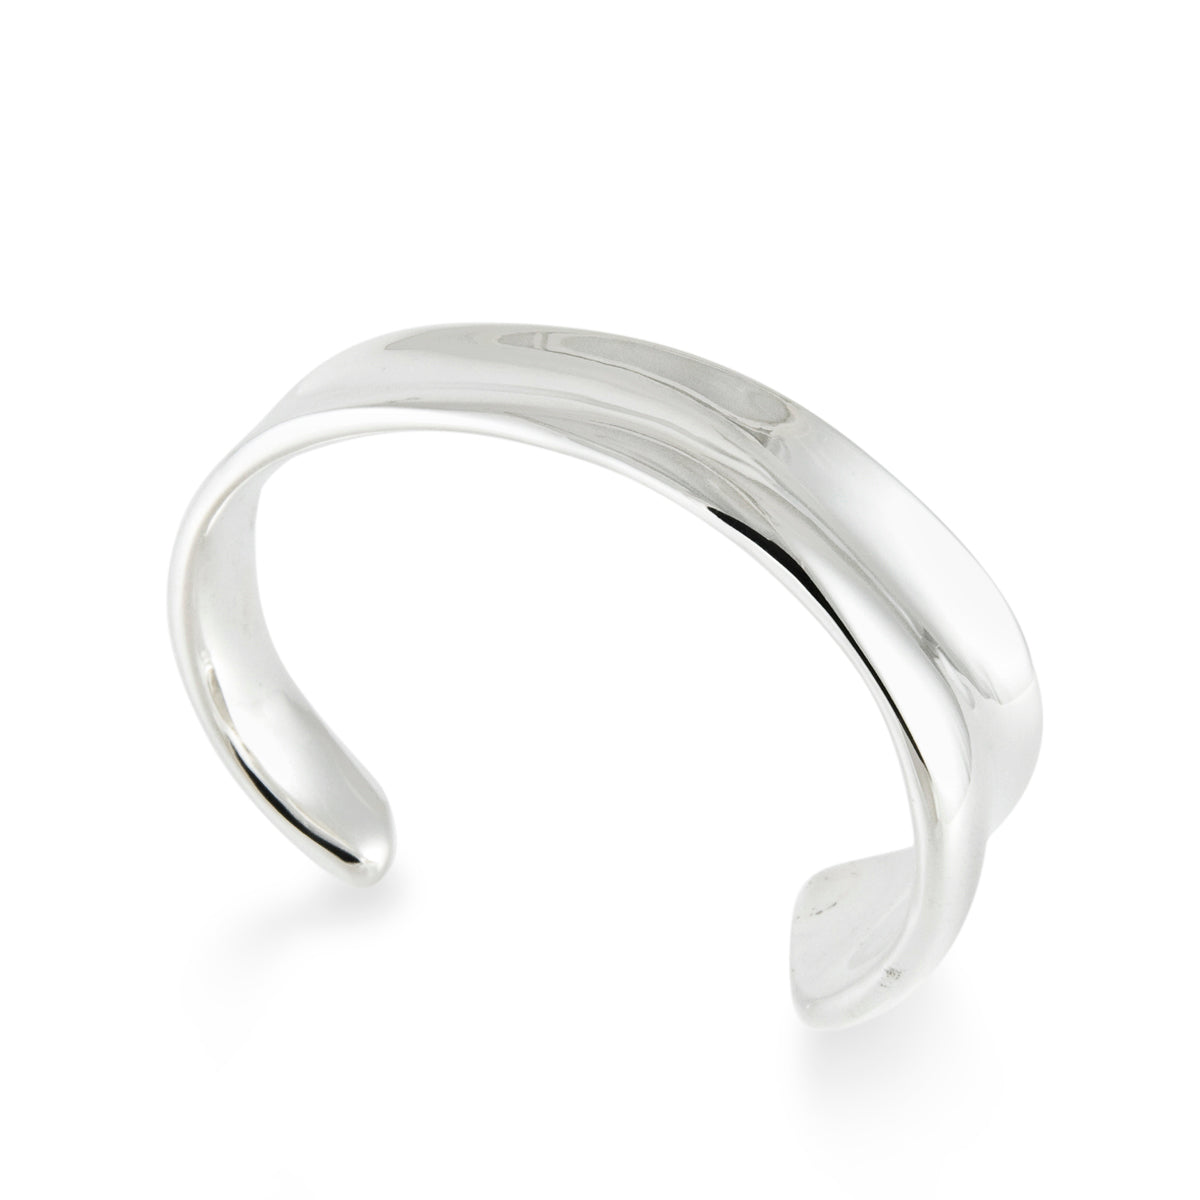 ZN A106 CONCAVE TAPERED CUFF